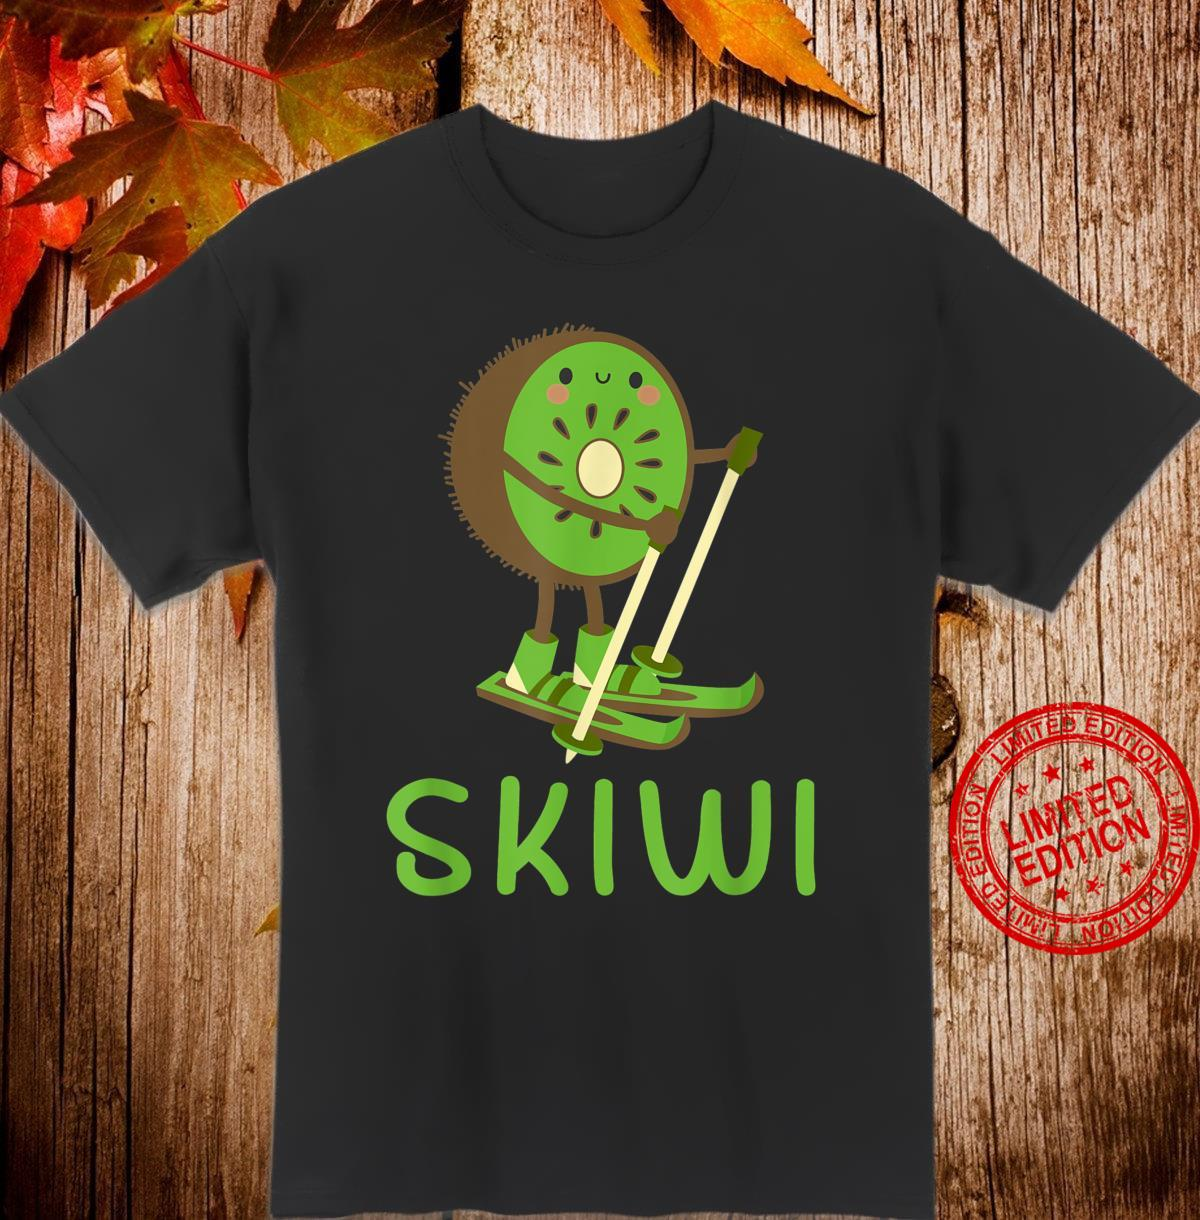 Skiwi Kiwi Ski Skier Fruit Fruits Winter Sports Apres Shirt